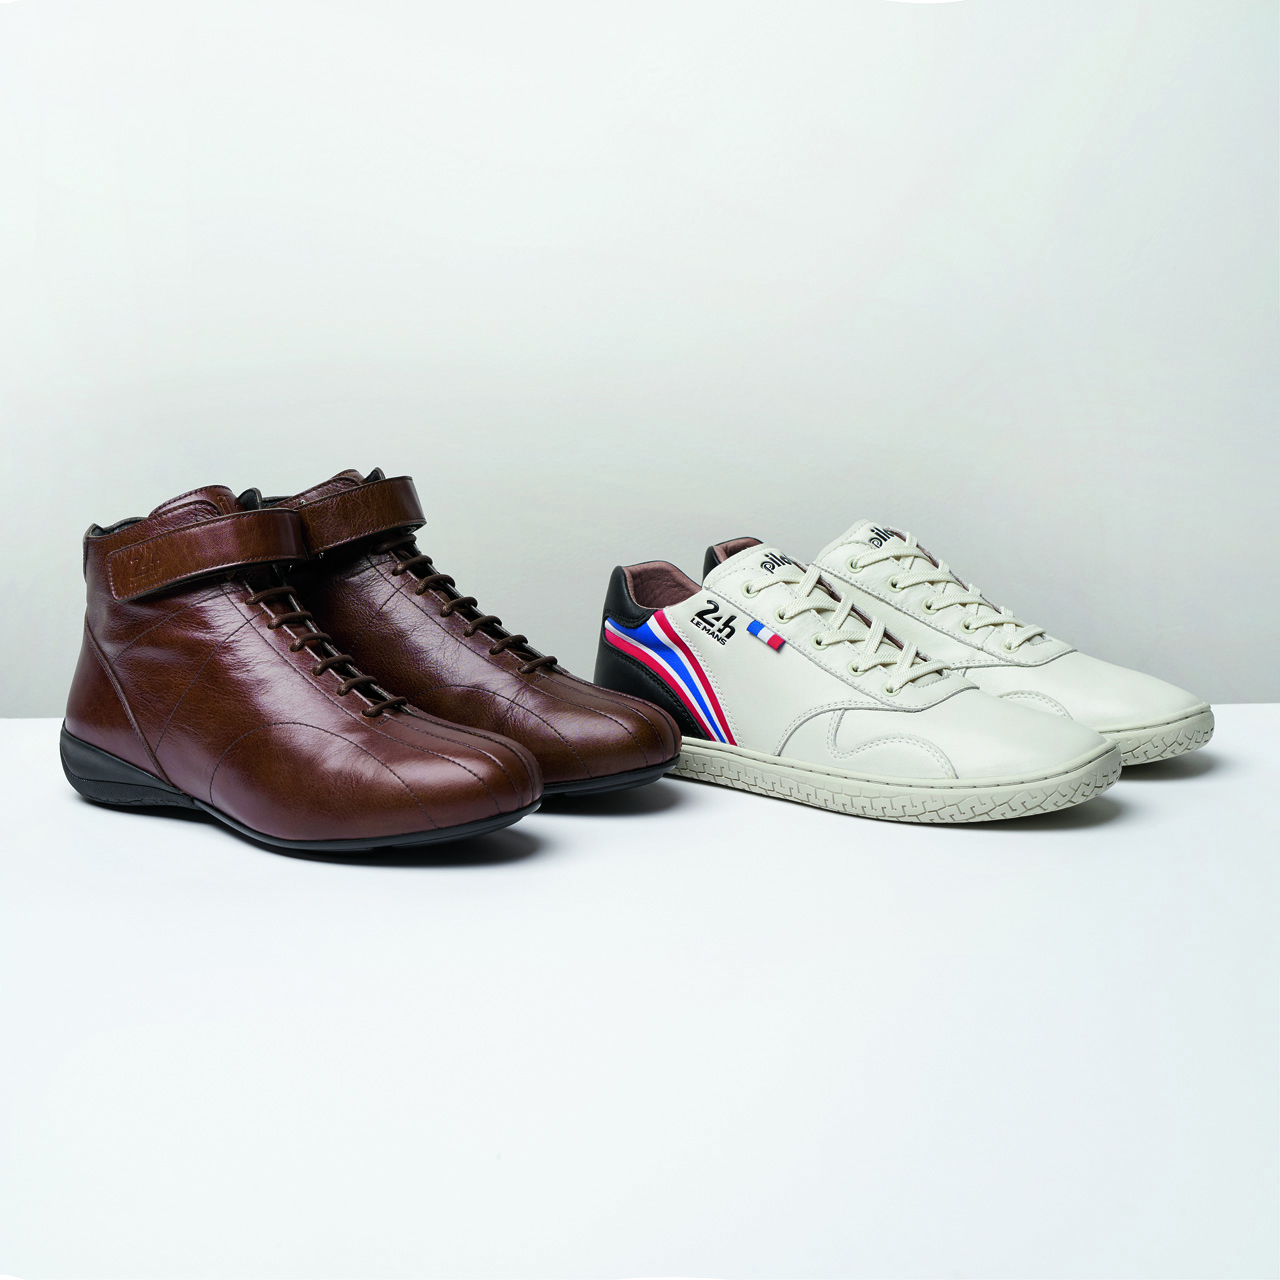 piloti-special-edition-driving-shoes